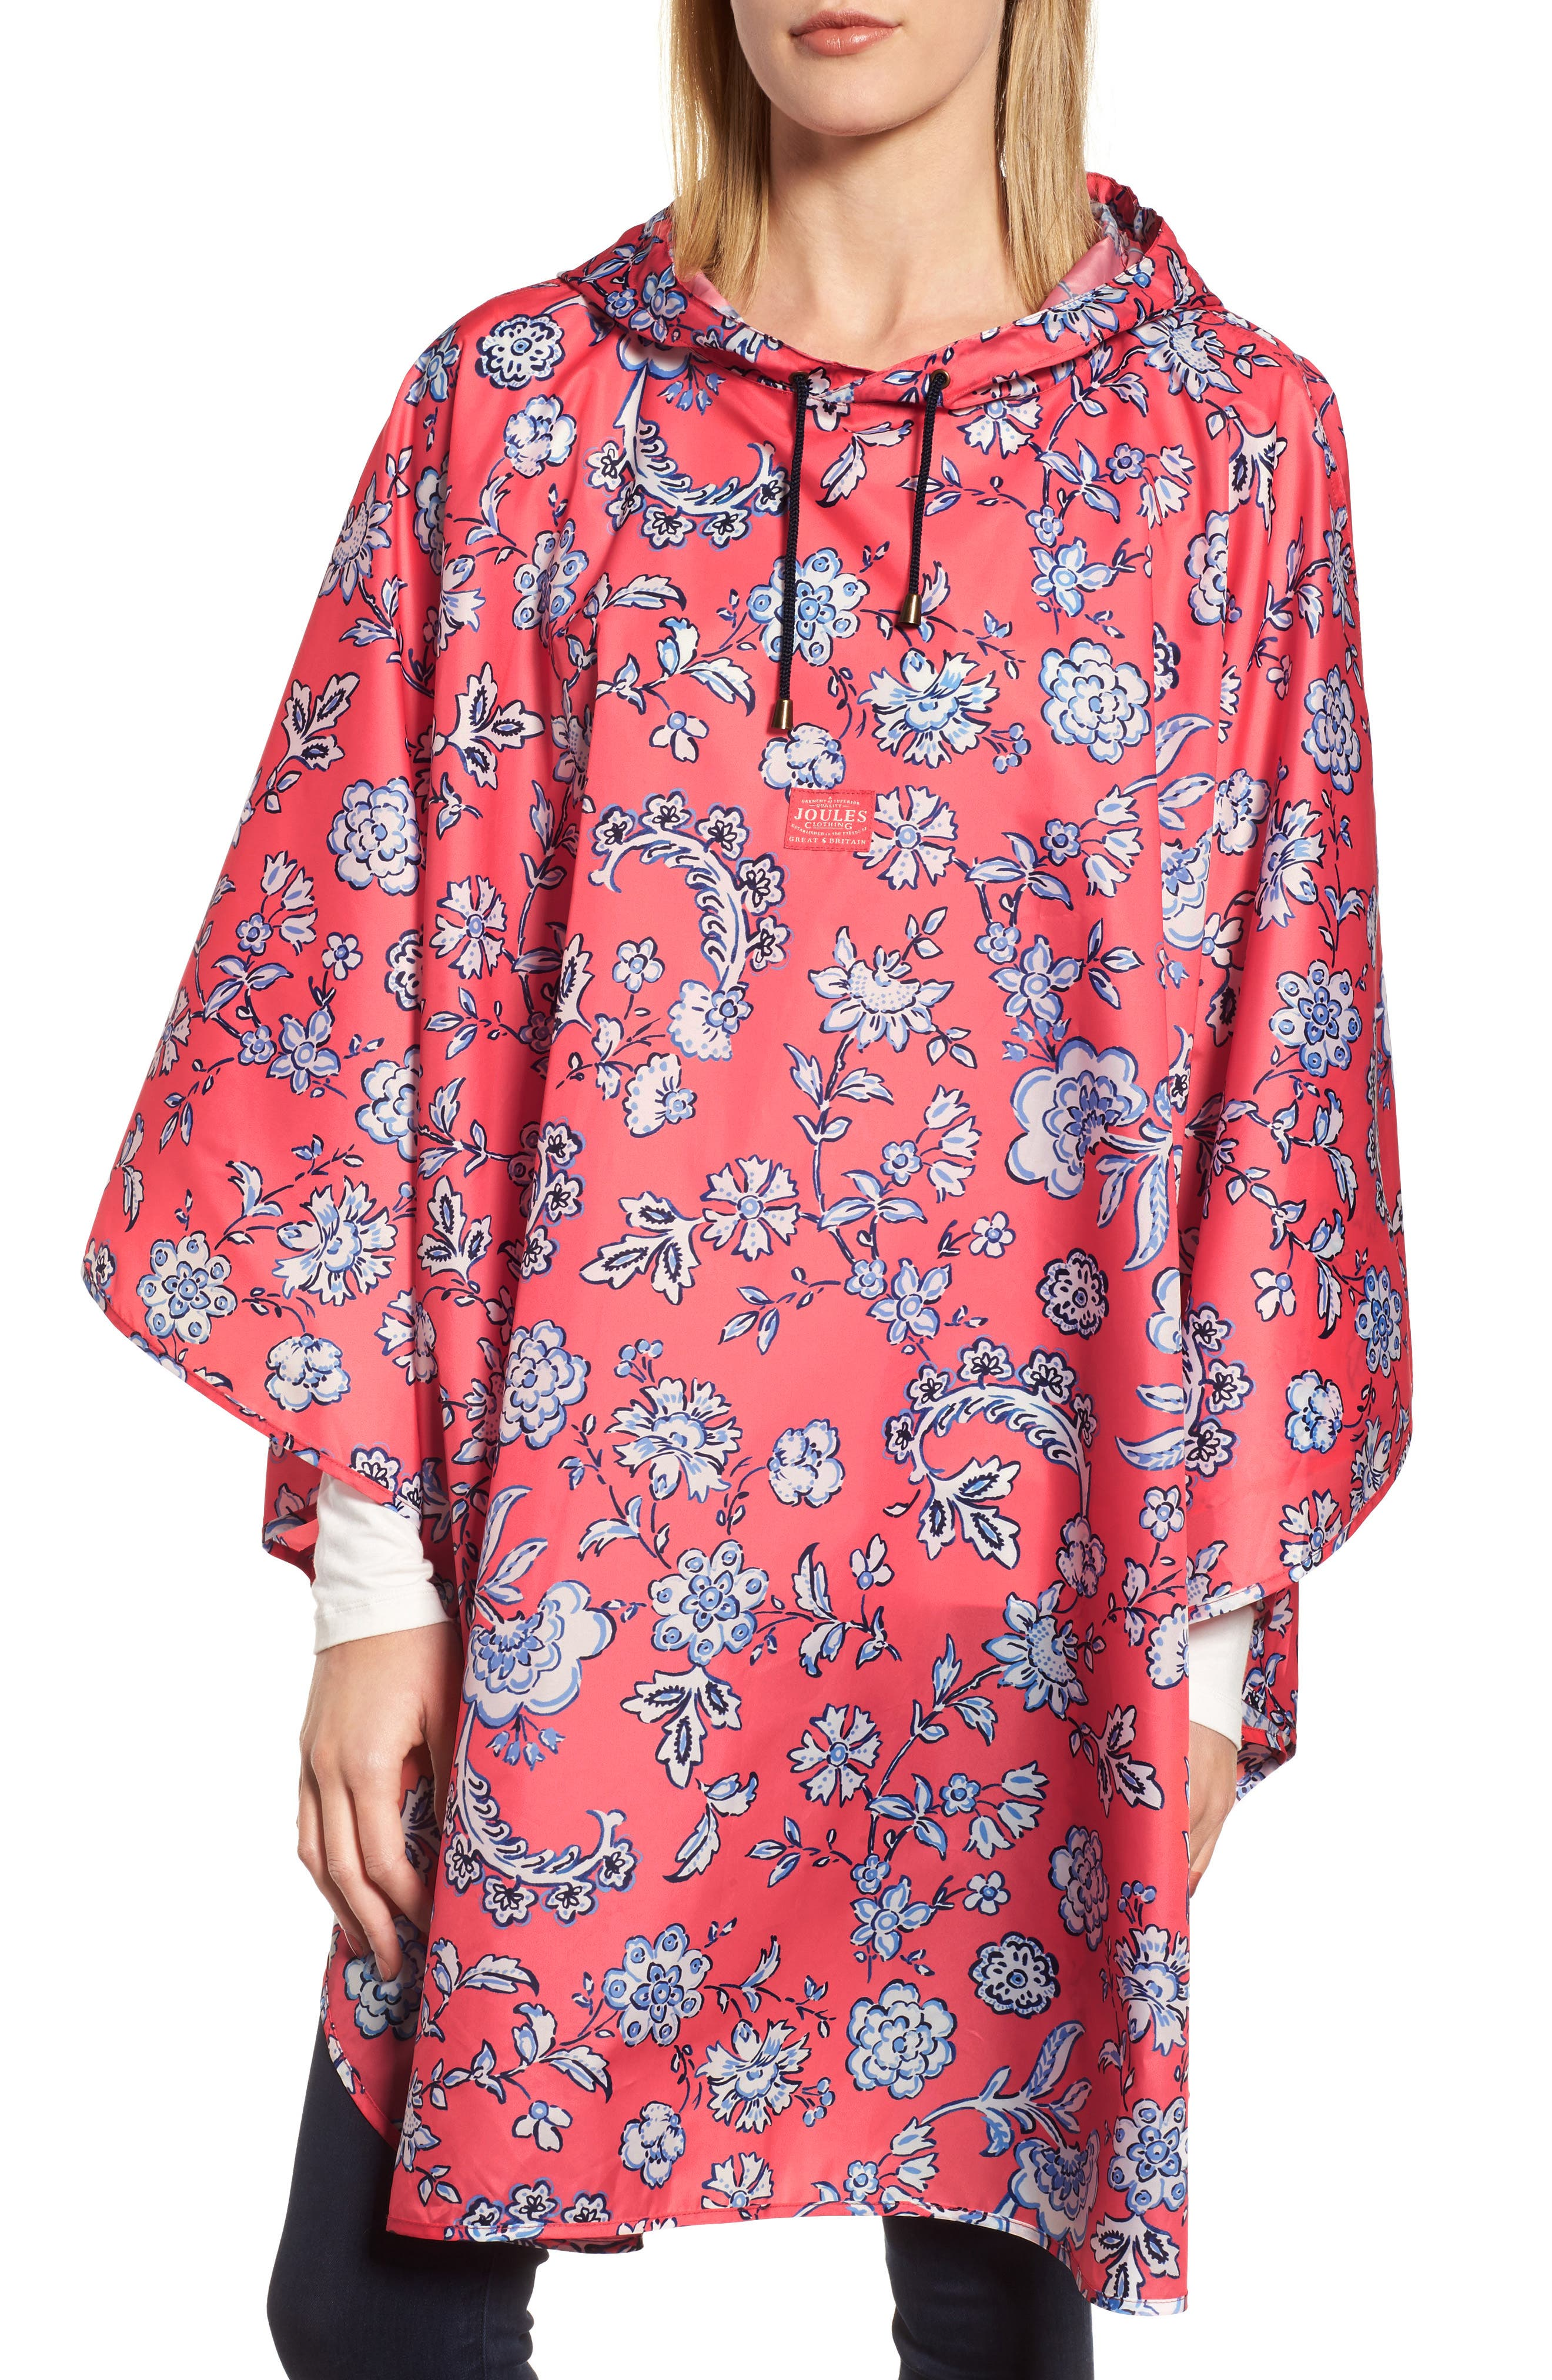 Alternate Image 1 Selected - Joules Right as Rain Print Packable Hooded Poncho